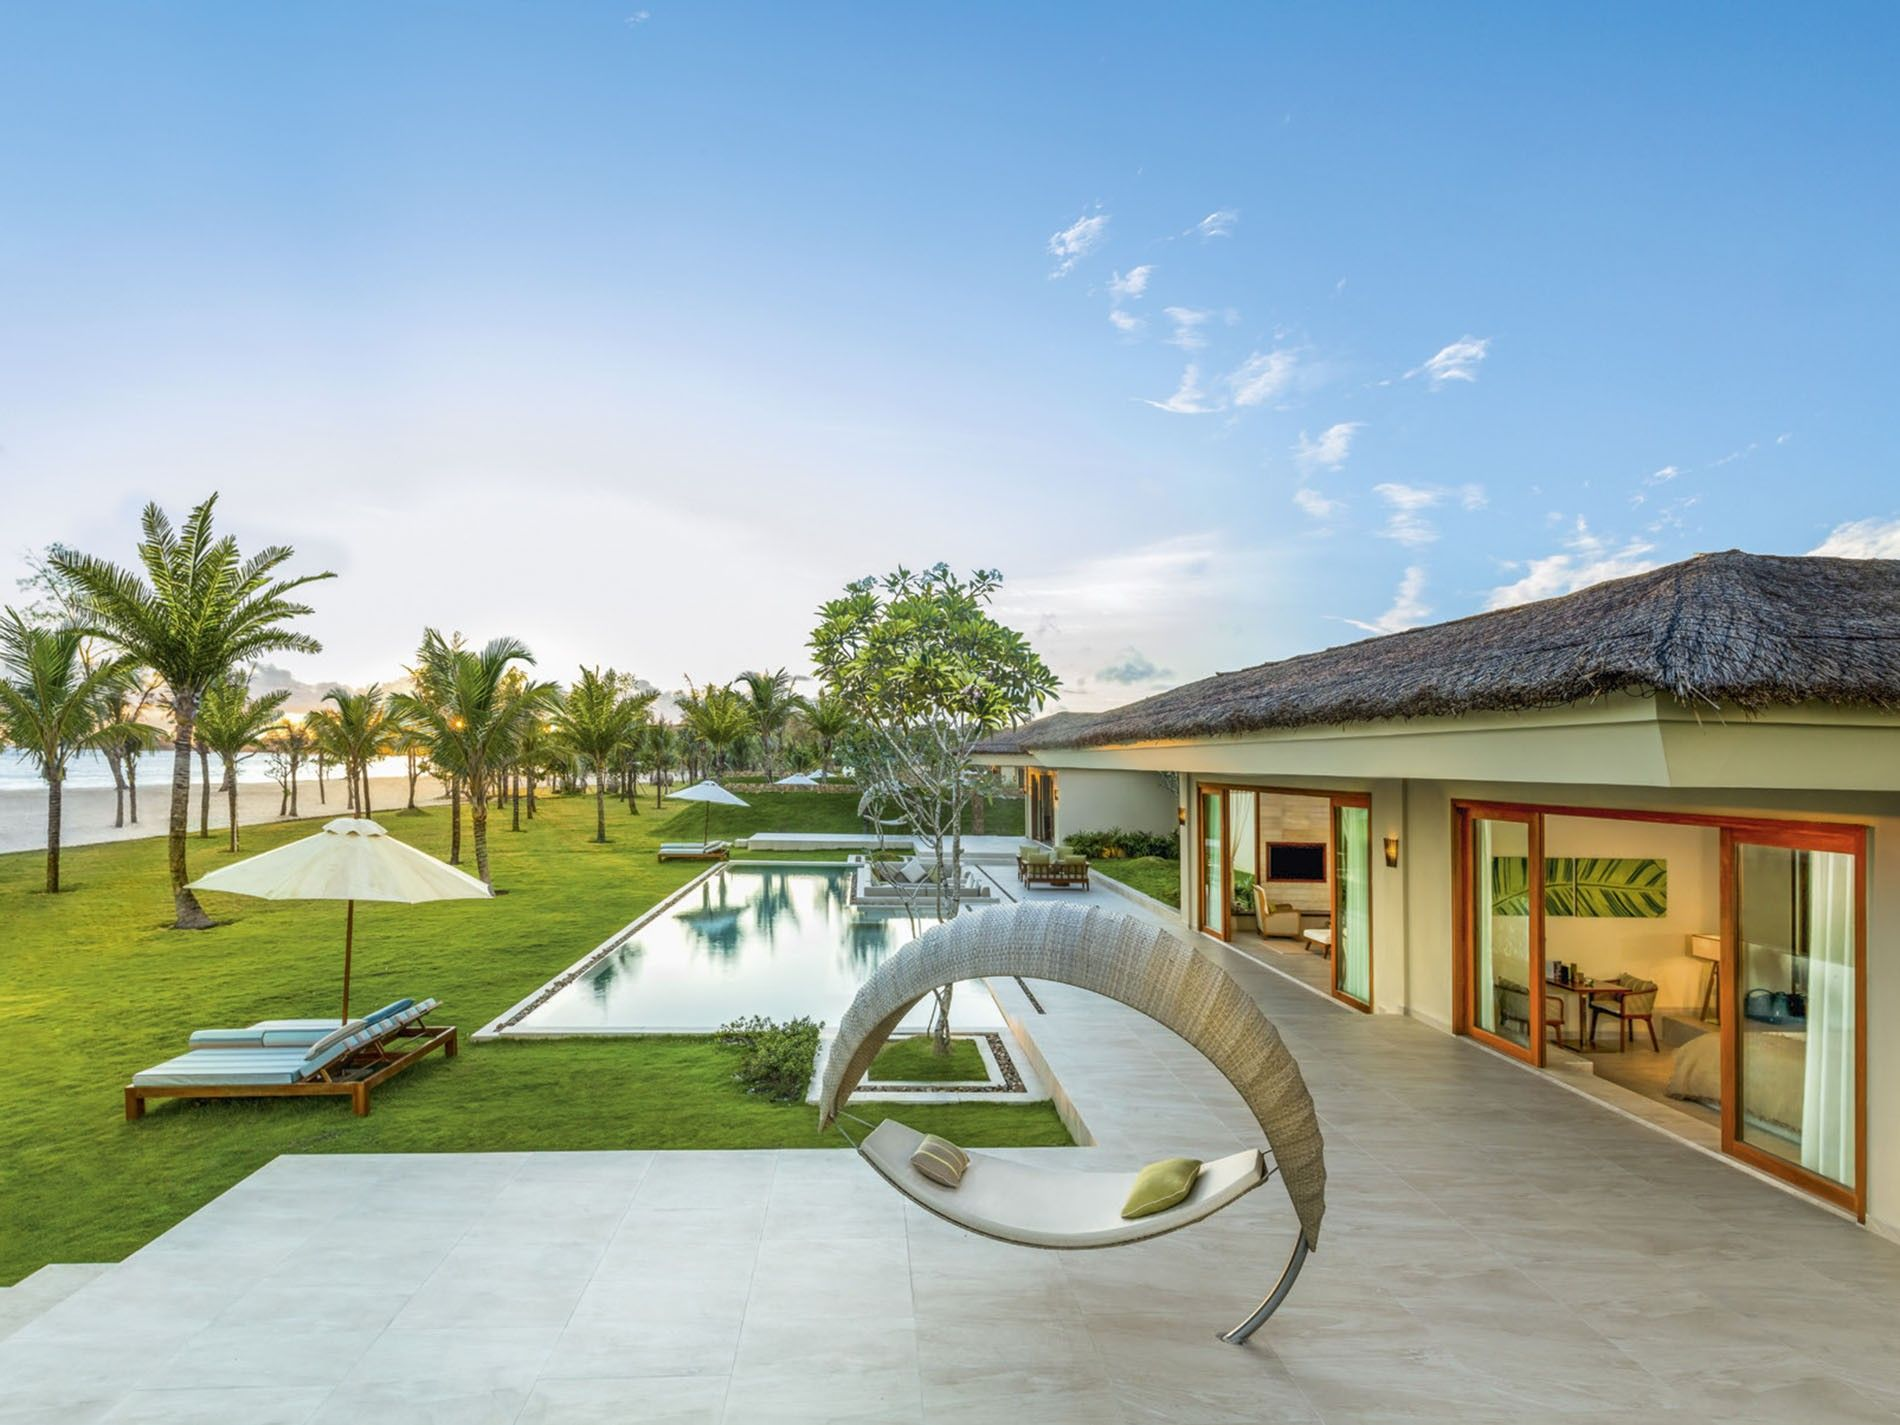 Rooms with an outside pool at Fusion Resorts Phu Quoc